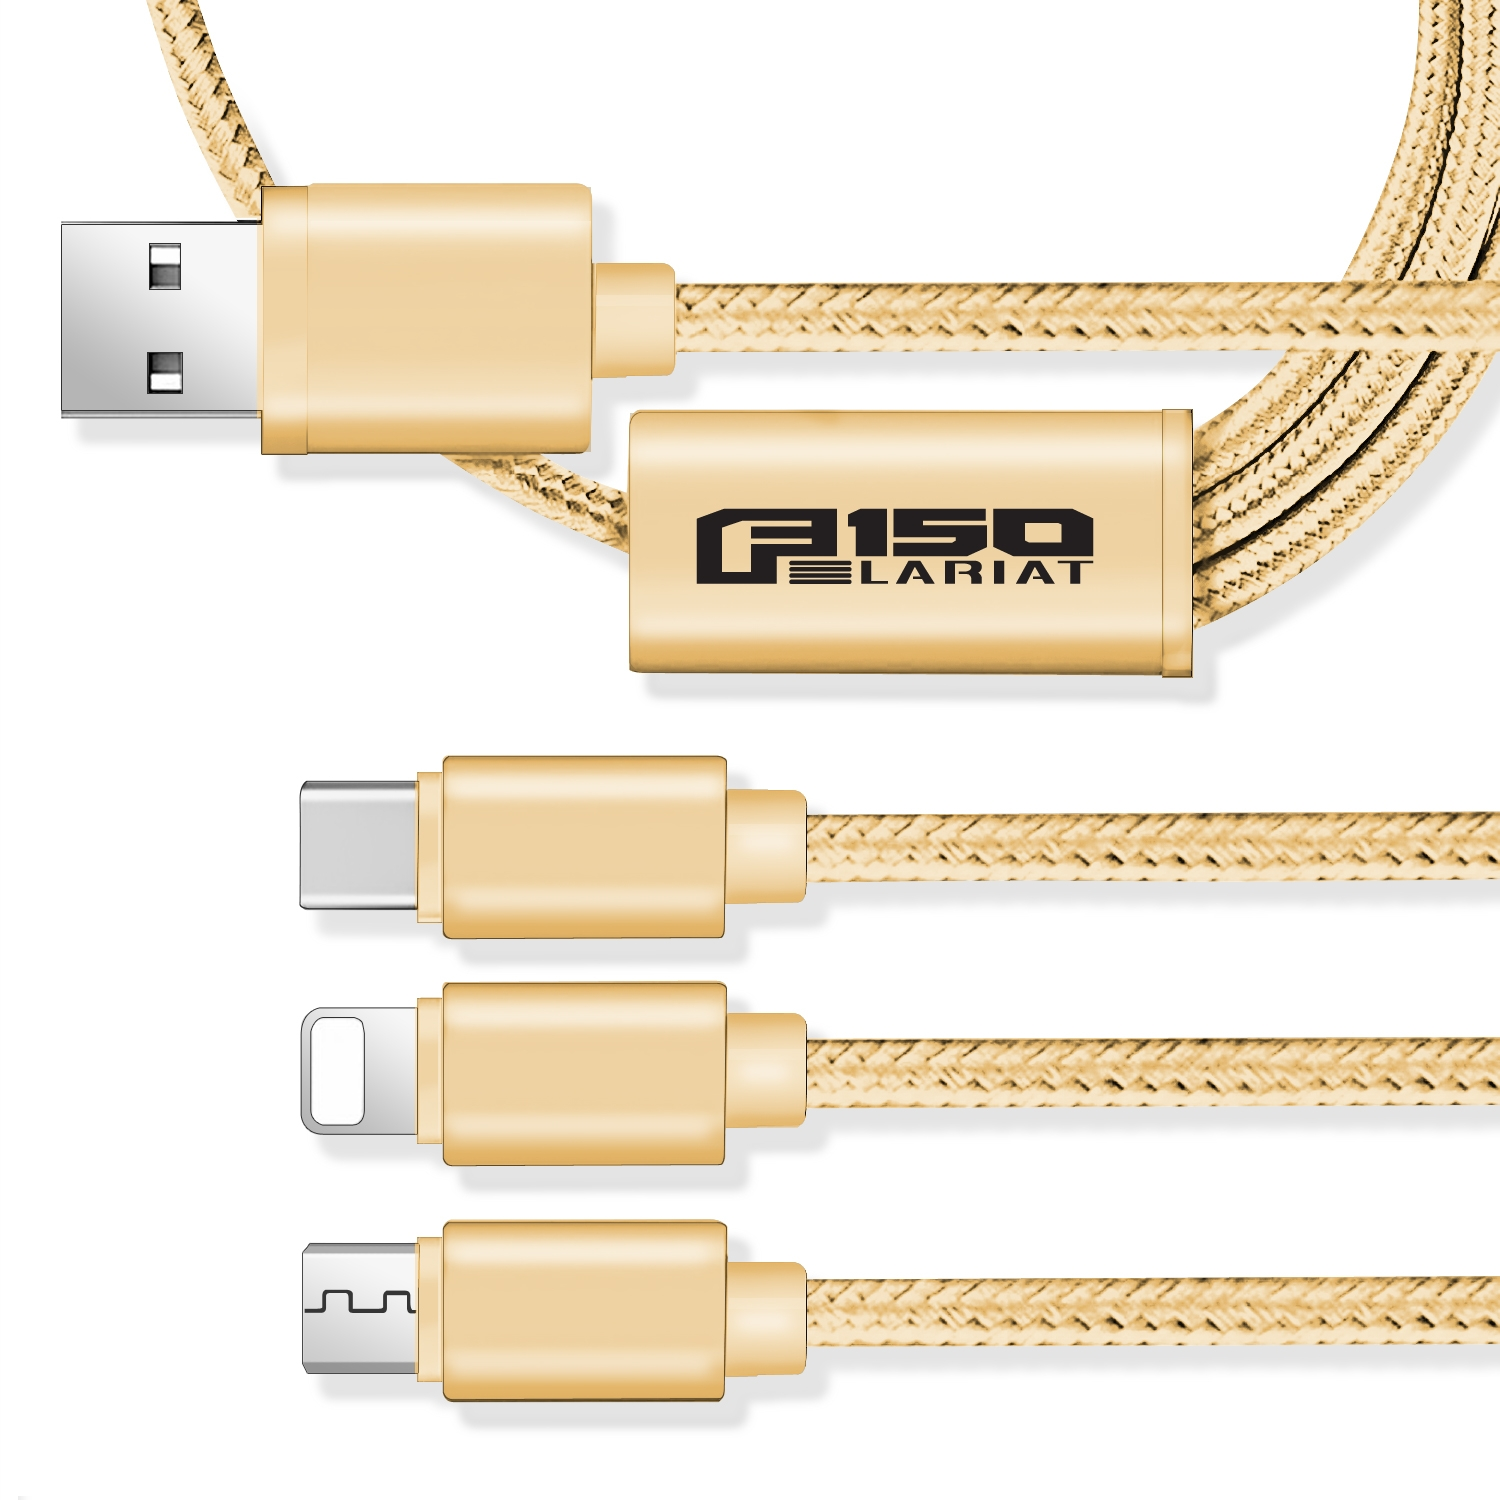 Ford F150 Lariat 3 in 1 Golden 4 Ft Premium Multi Charging Cord USB Cable